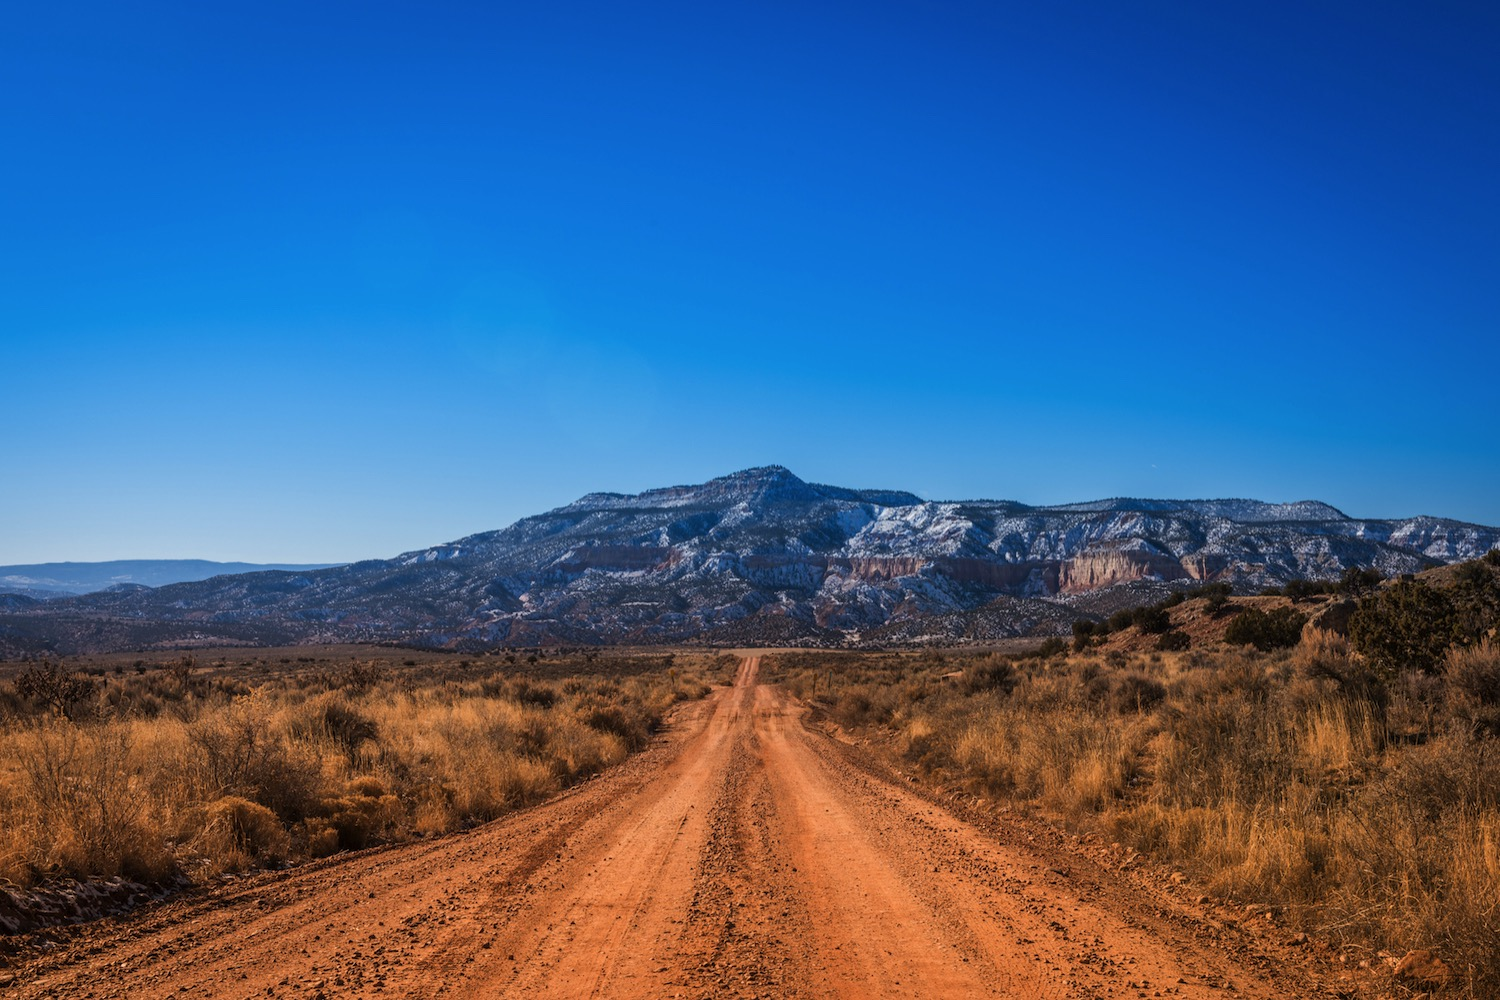 Road trip photography tips - dirt road